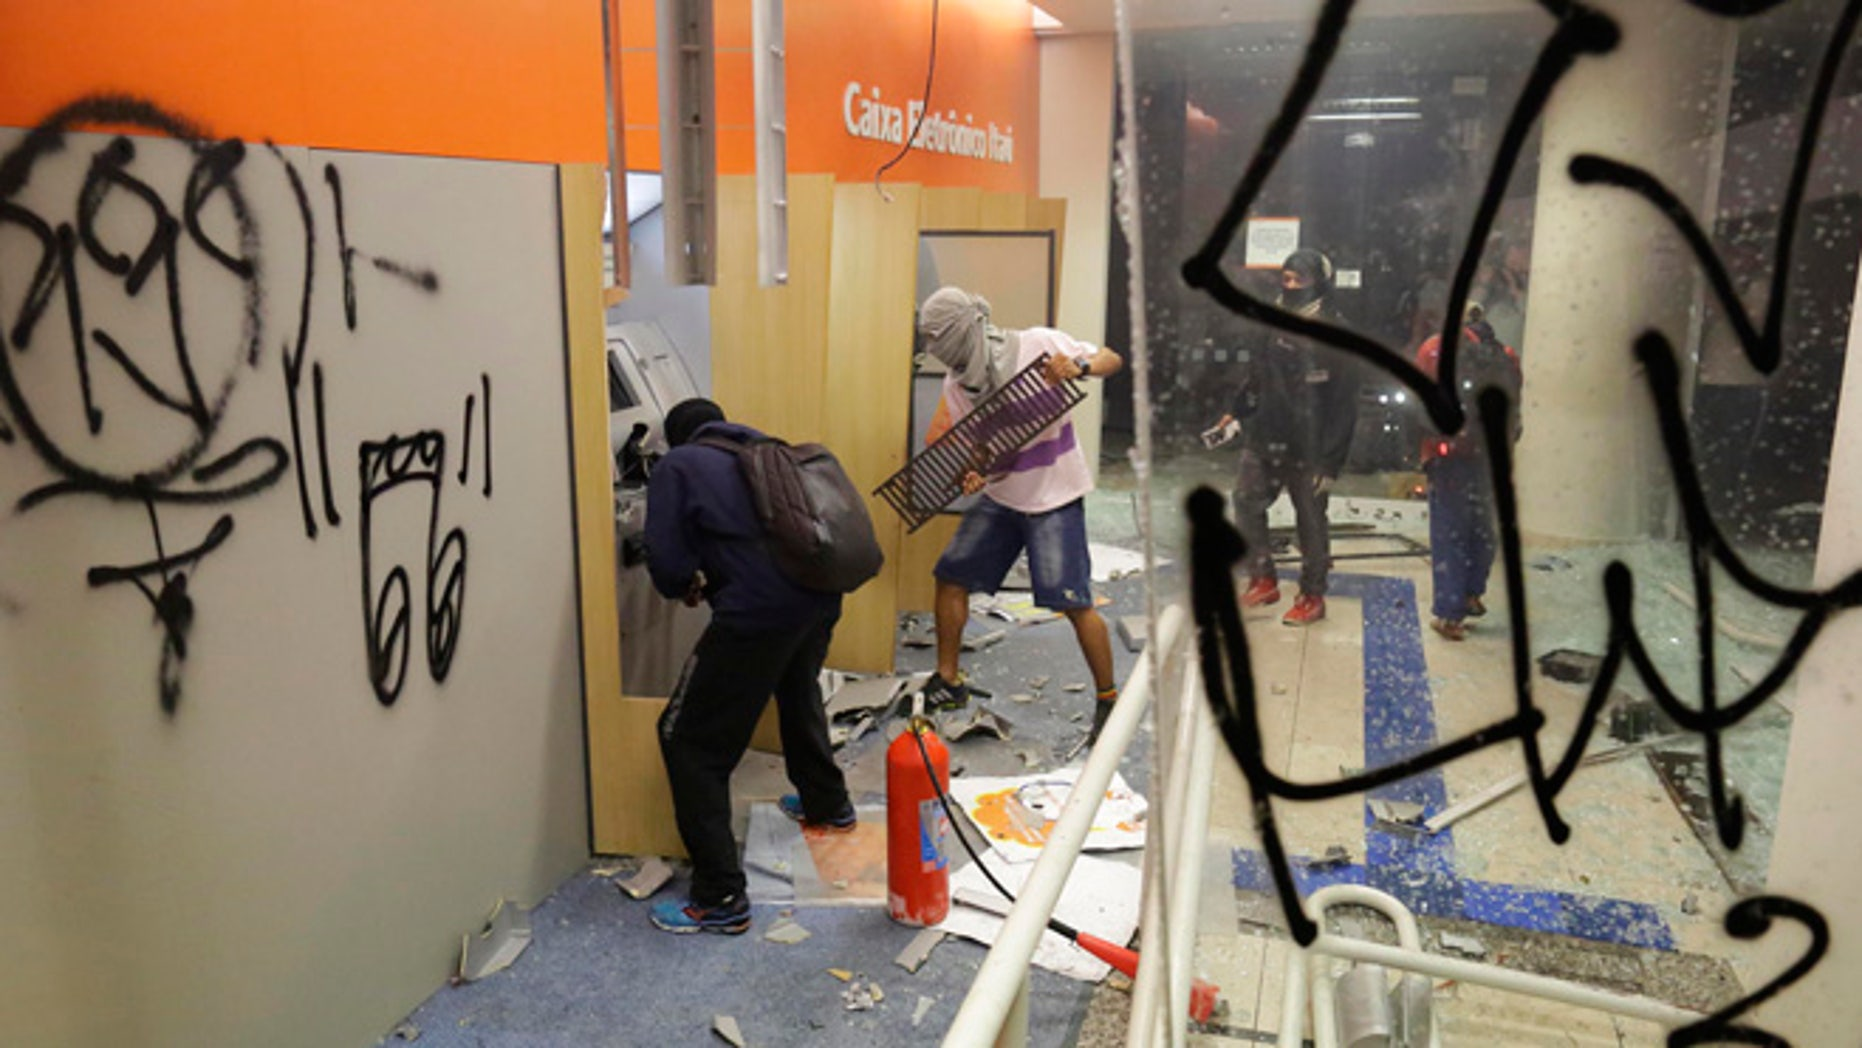 June 18, 2013: Protestors destroy ATM machines at a local a bank in Sao Paulo, Brazil. Thousands of demonstrators flooded into a square in Brazil's economic hub, Sao Paulo, on Tuesday. Sparked earlier this month by a 10-cent hike in bus and subway fares and organized via social media, the nationwide protests are giving voice to growing discontent over the gap between Brazils high tax burden and the low quality of public infrastructure, echoing similar mobilizations in Turkey, Greece and other parts of the globe where weariness with governments has exploded in the streets.